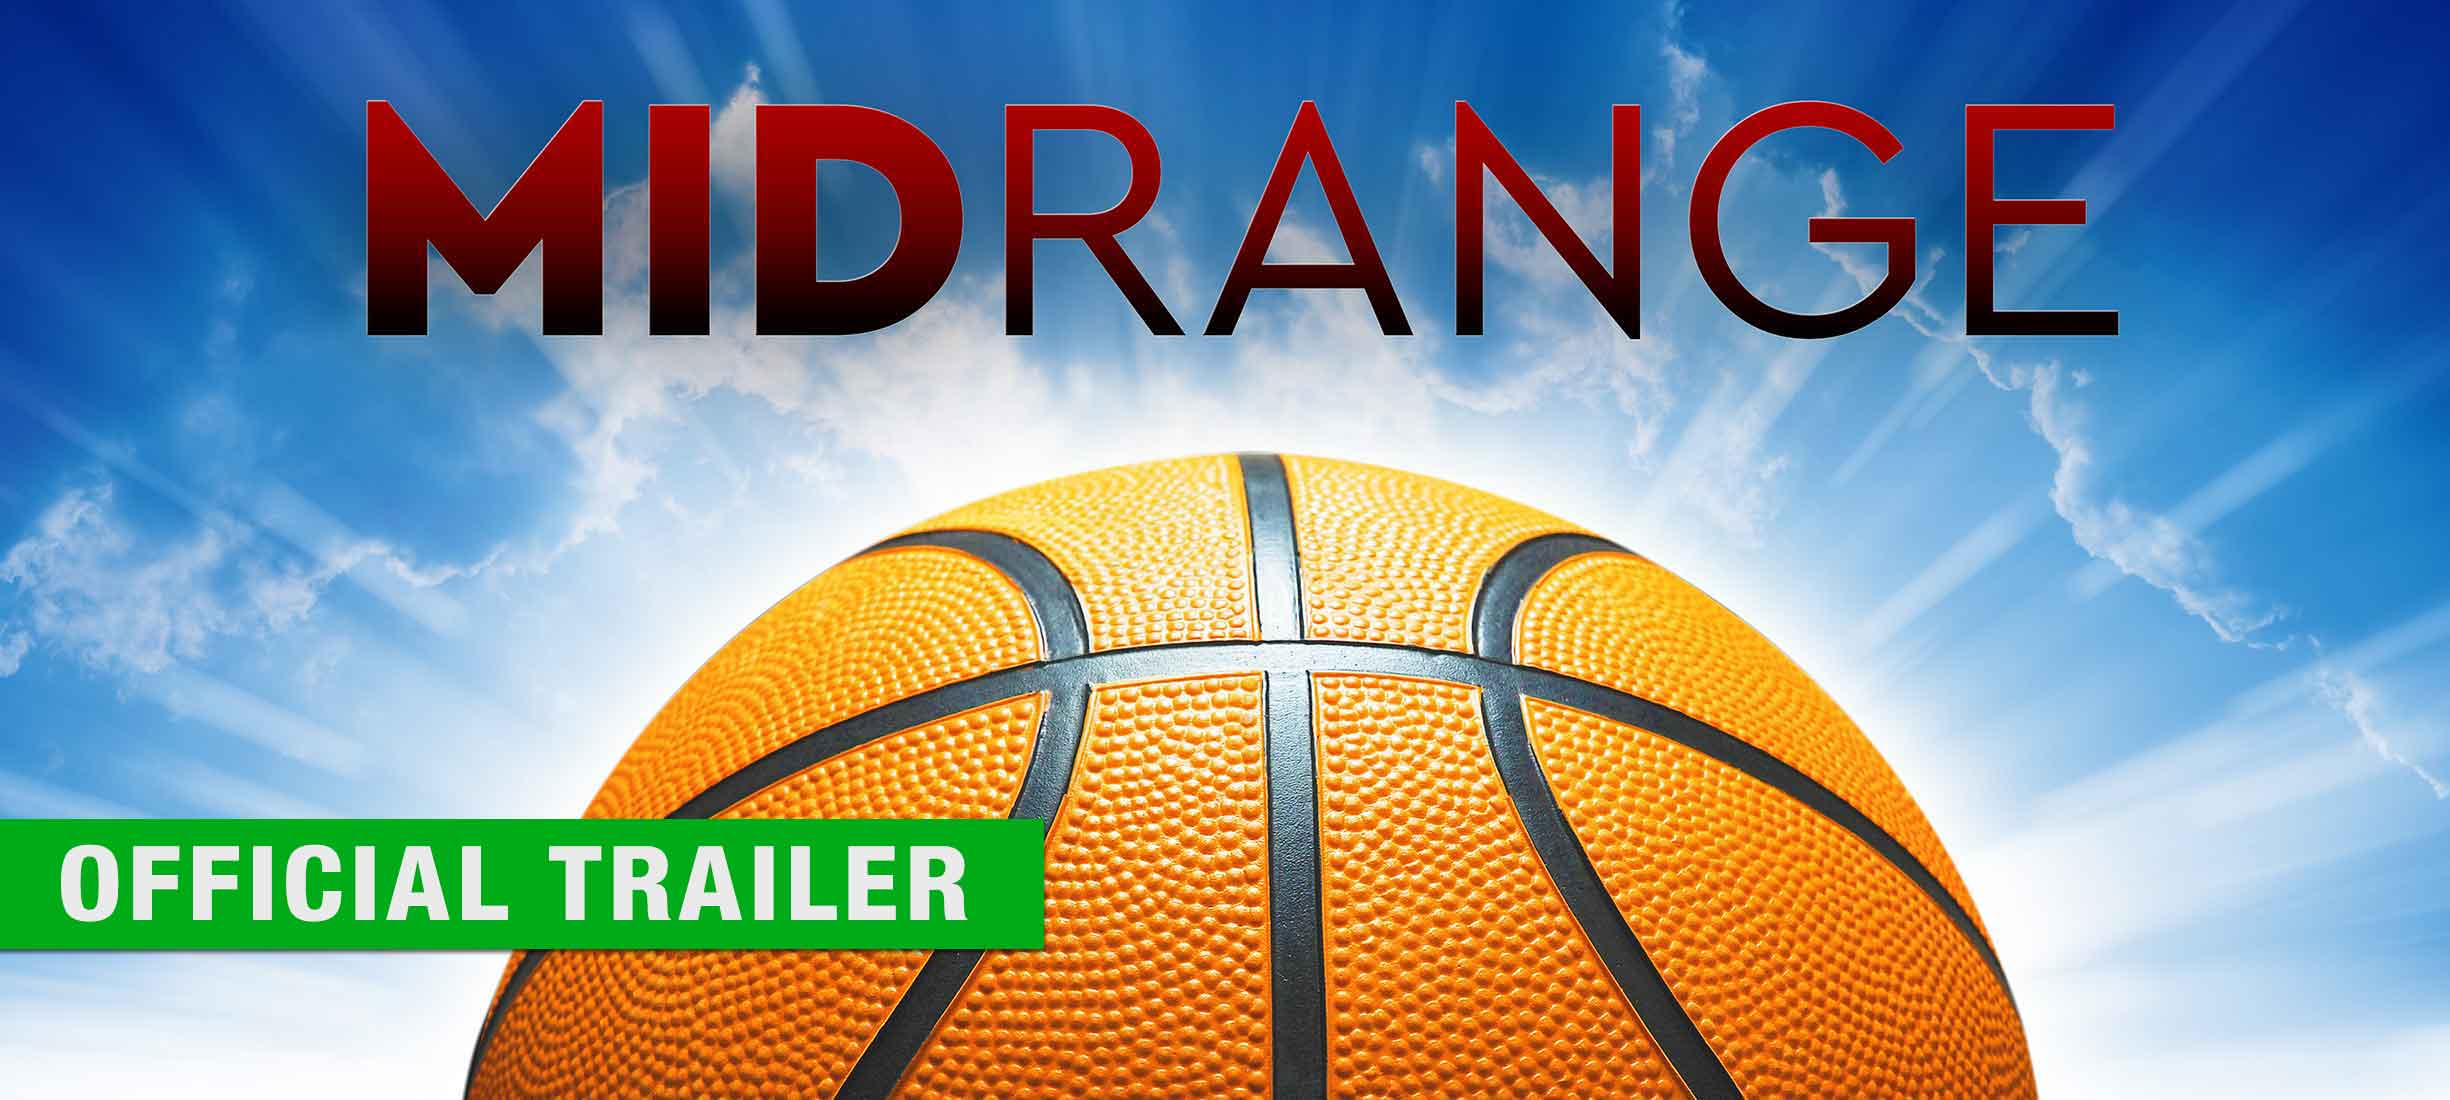 Midrange - Official Trailer